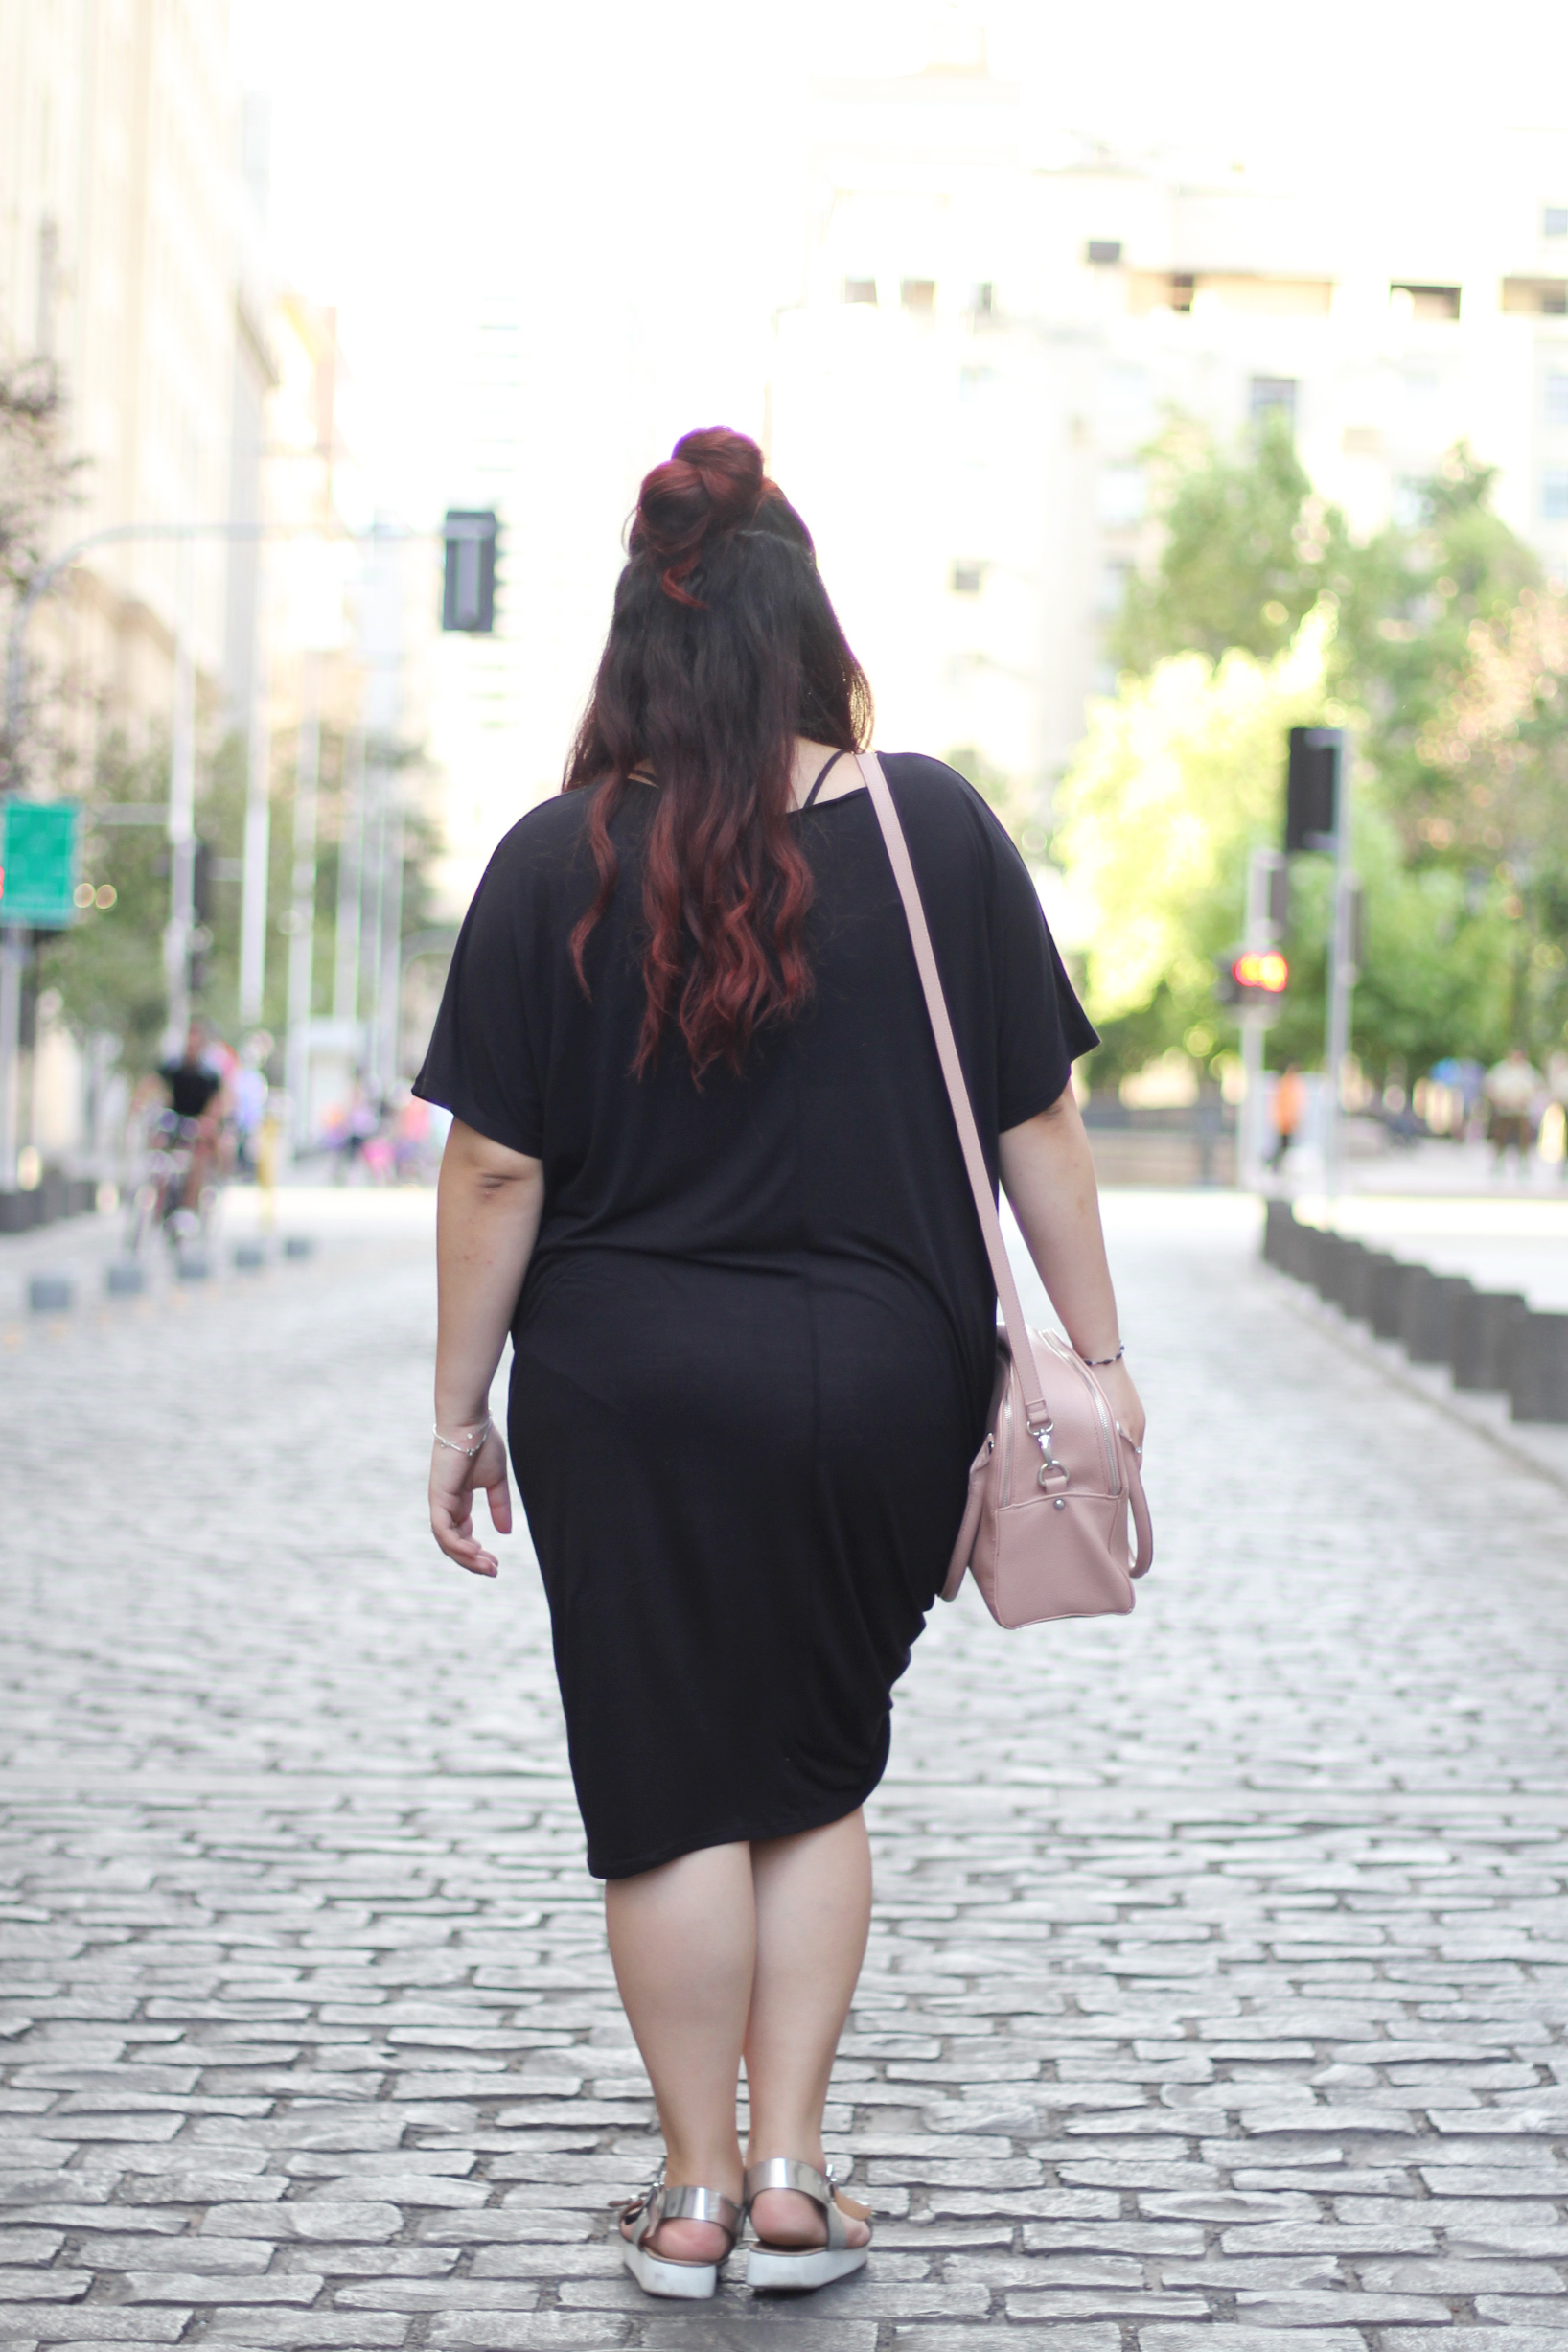 comfy-look-oversized-dress-dafiti-chile-forever-21-mexican-blogger-hm-half-bun-street-style-easy-going-outfit-pink-handbag